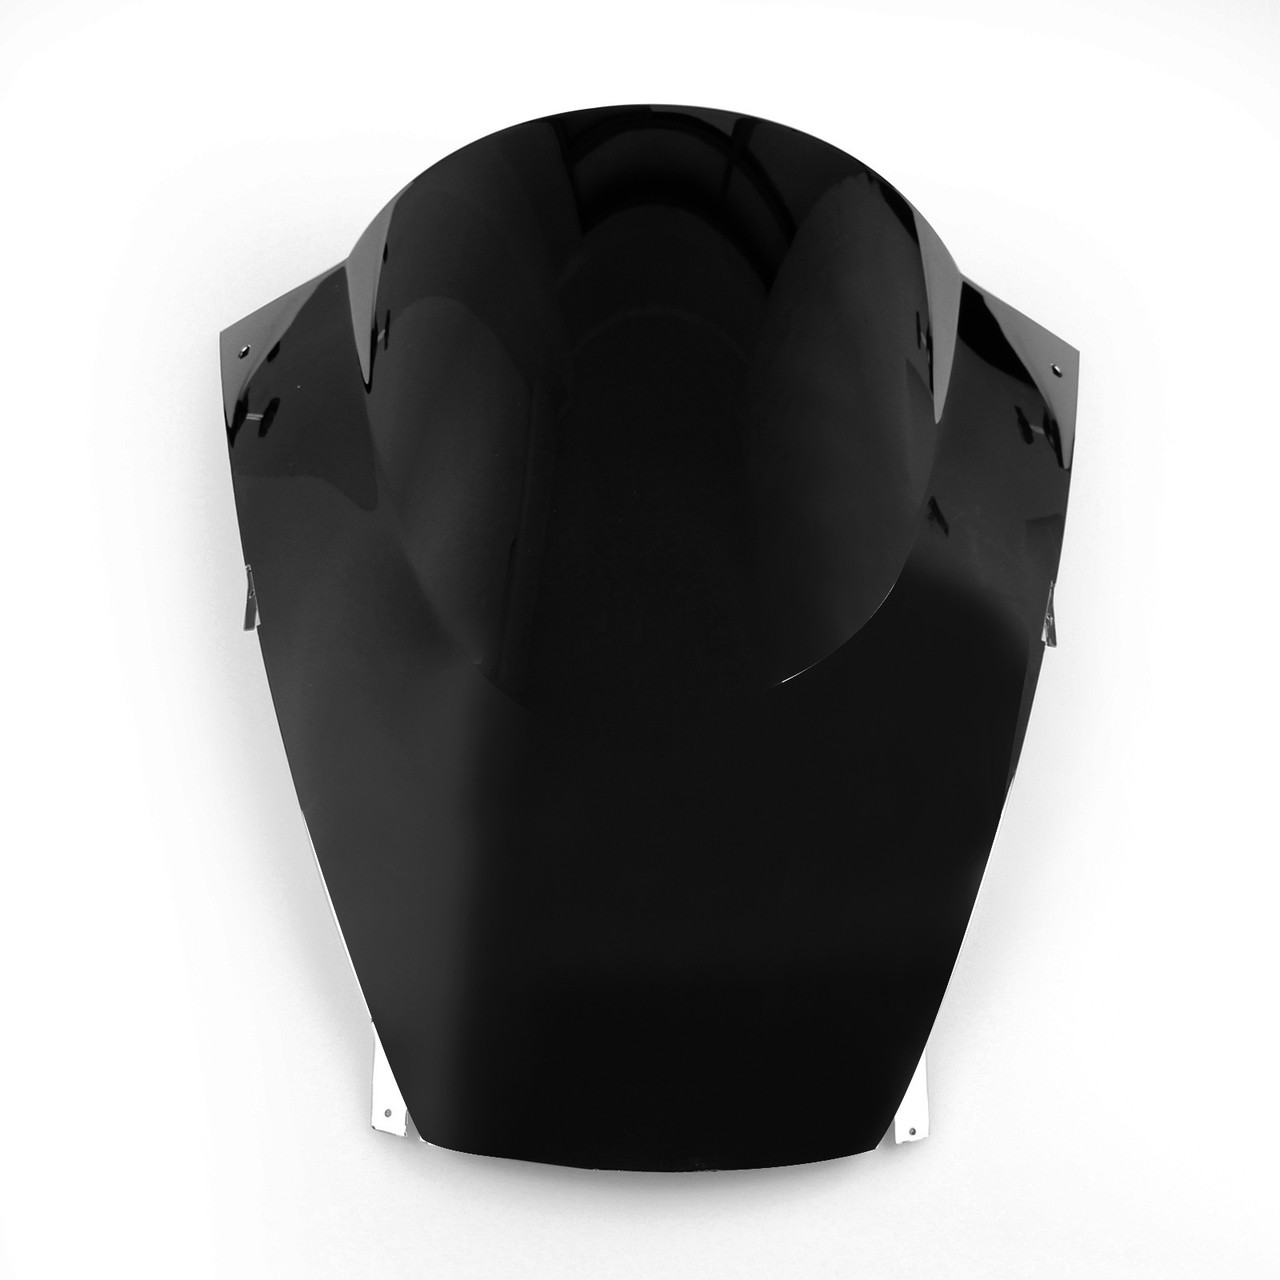 Windscreen Windshield Kawasaki Ninja ZX12 R (2002-2004), Double Bubble, Black